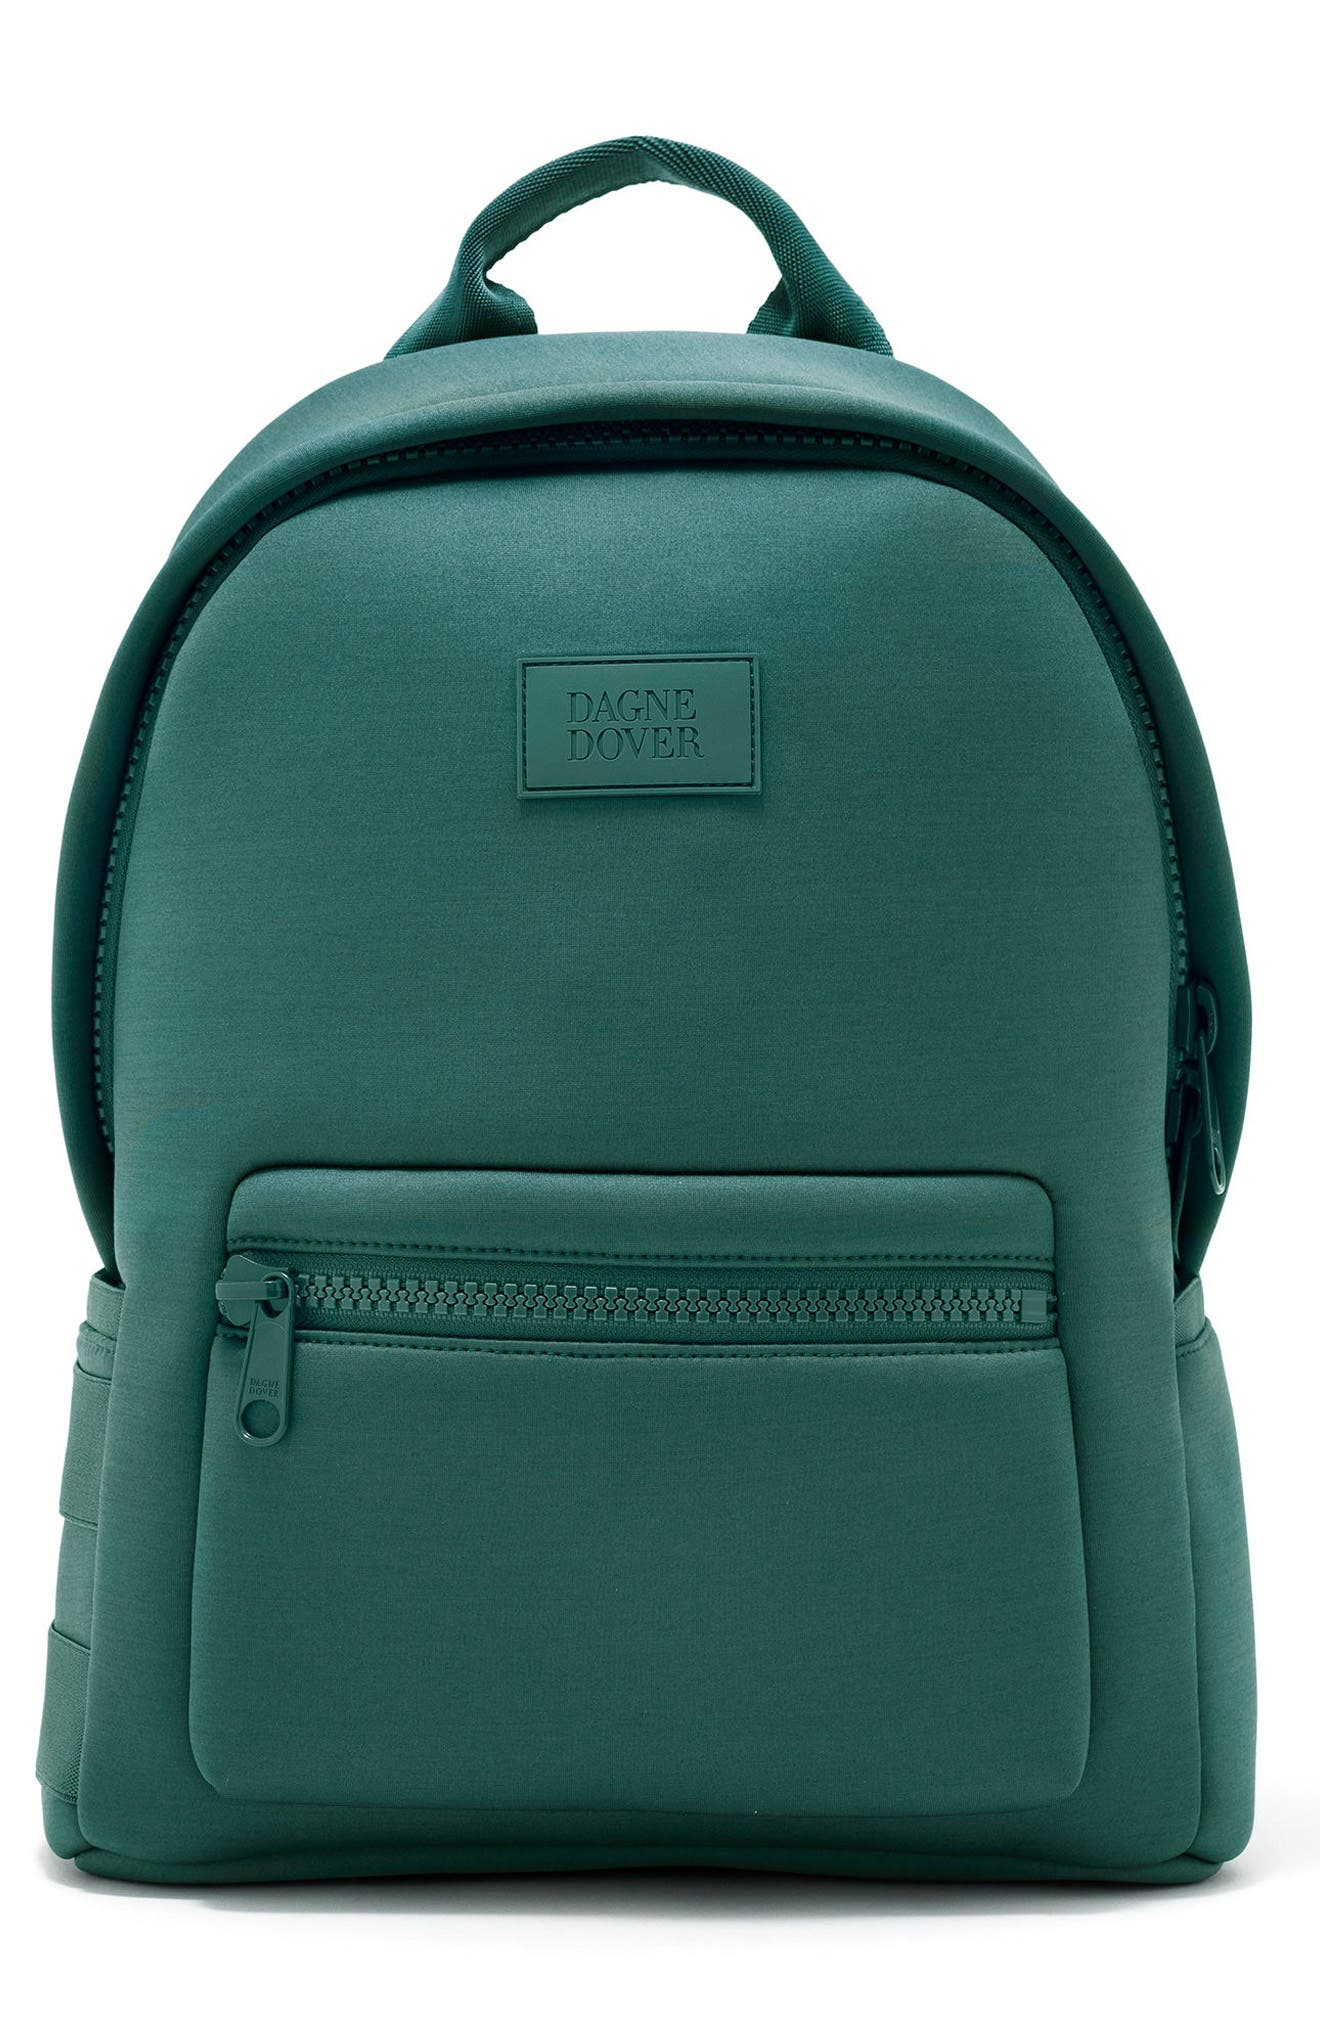 365 Dakota Neoprene Backpack,                         Main,                         color, Palm